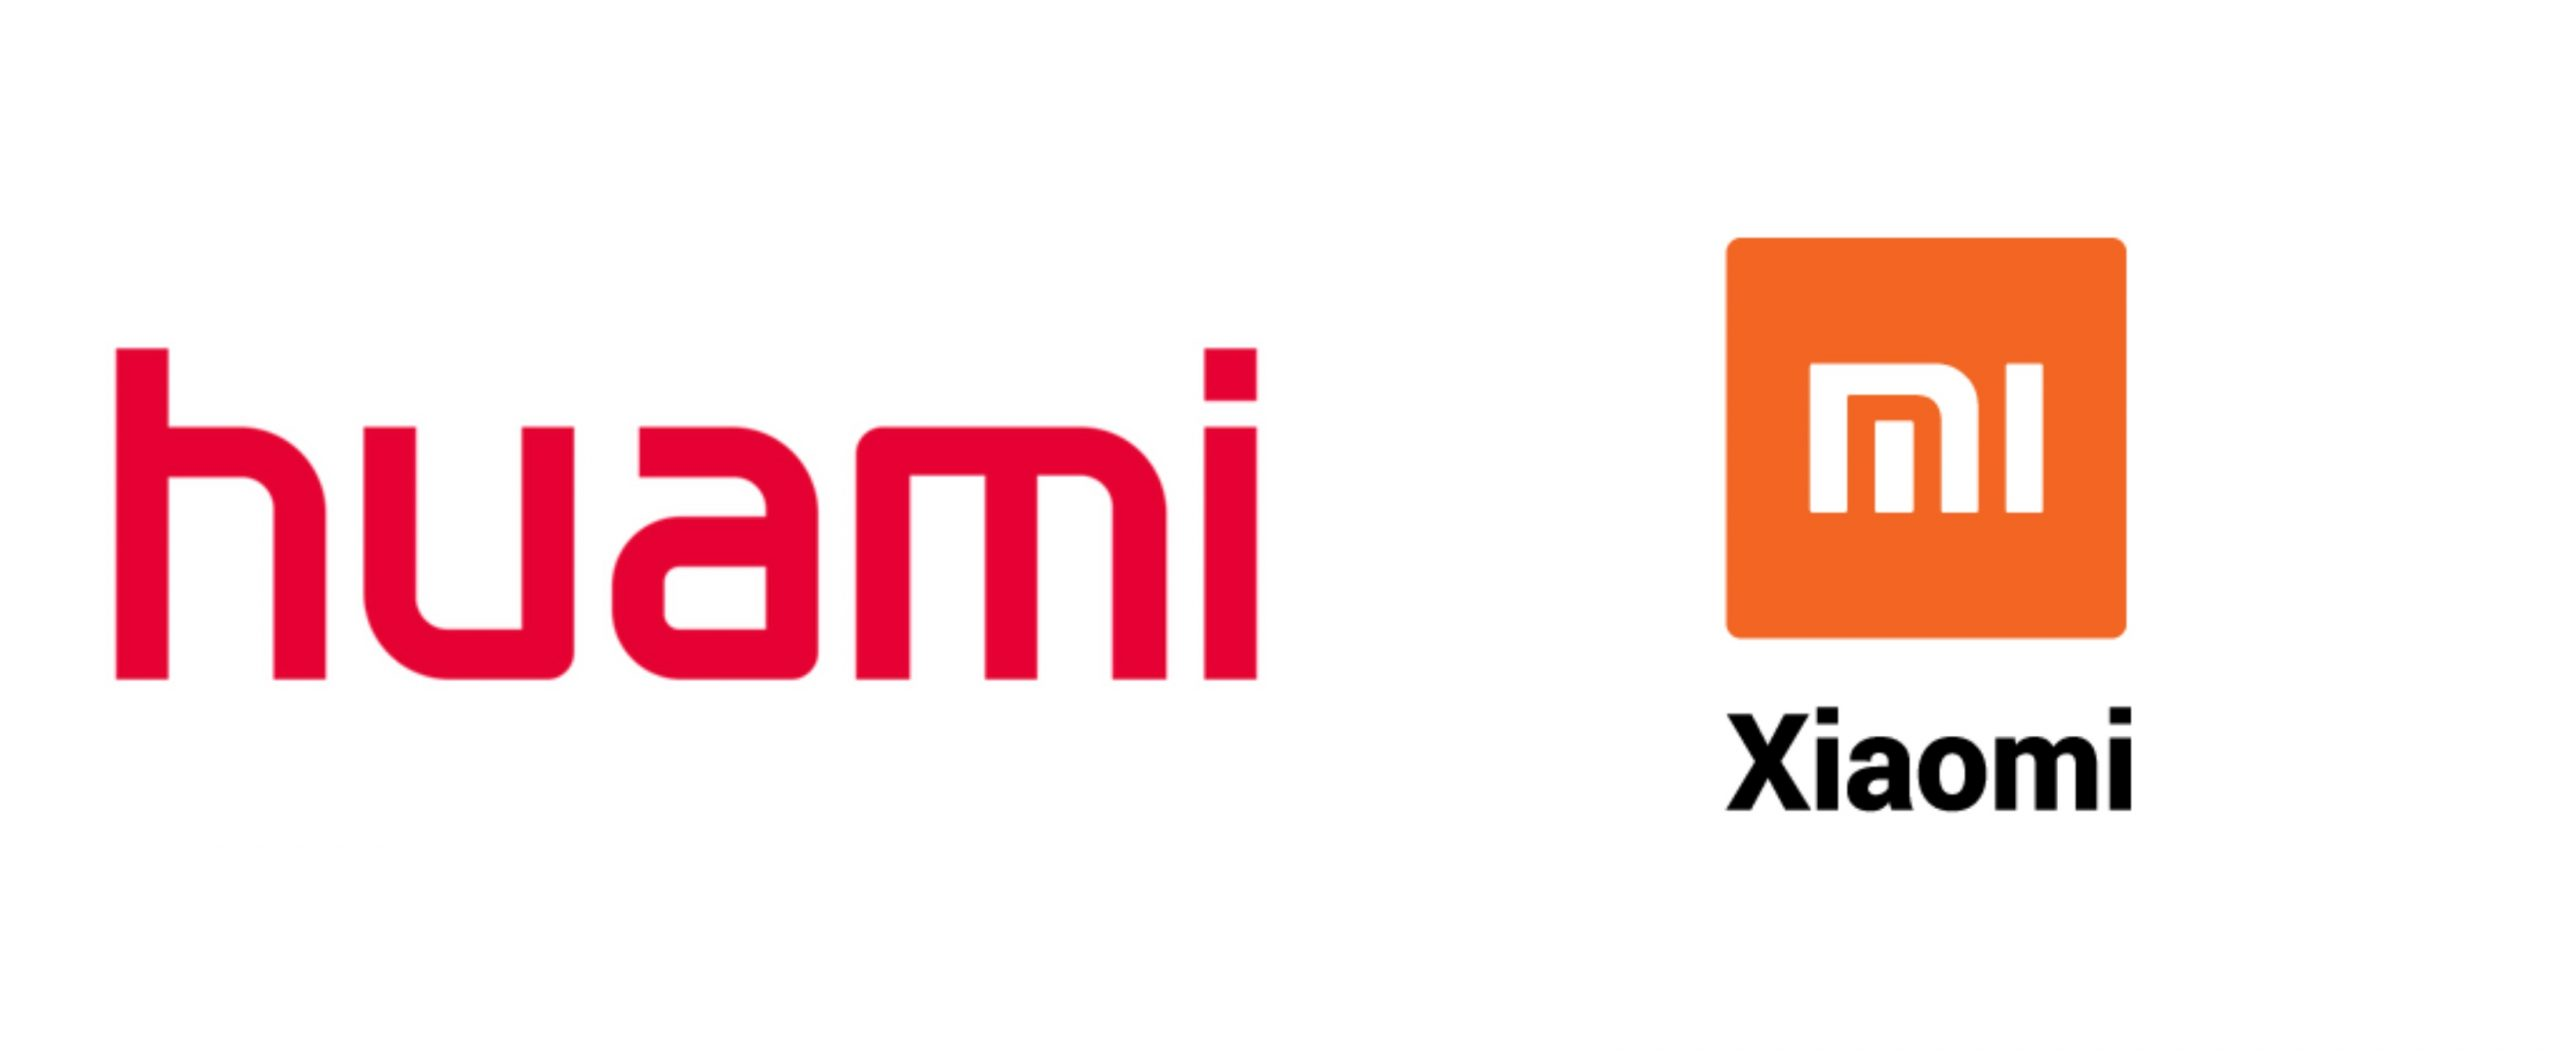 Huami will continue to make Smart Wearables for Xiaomi at least for the next three years